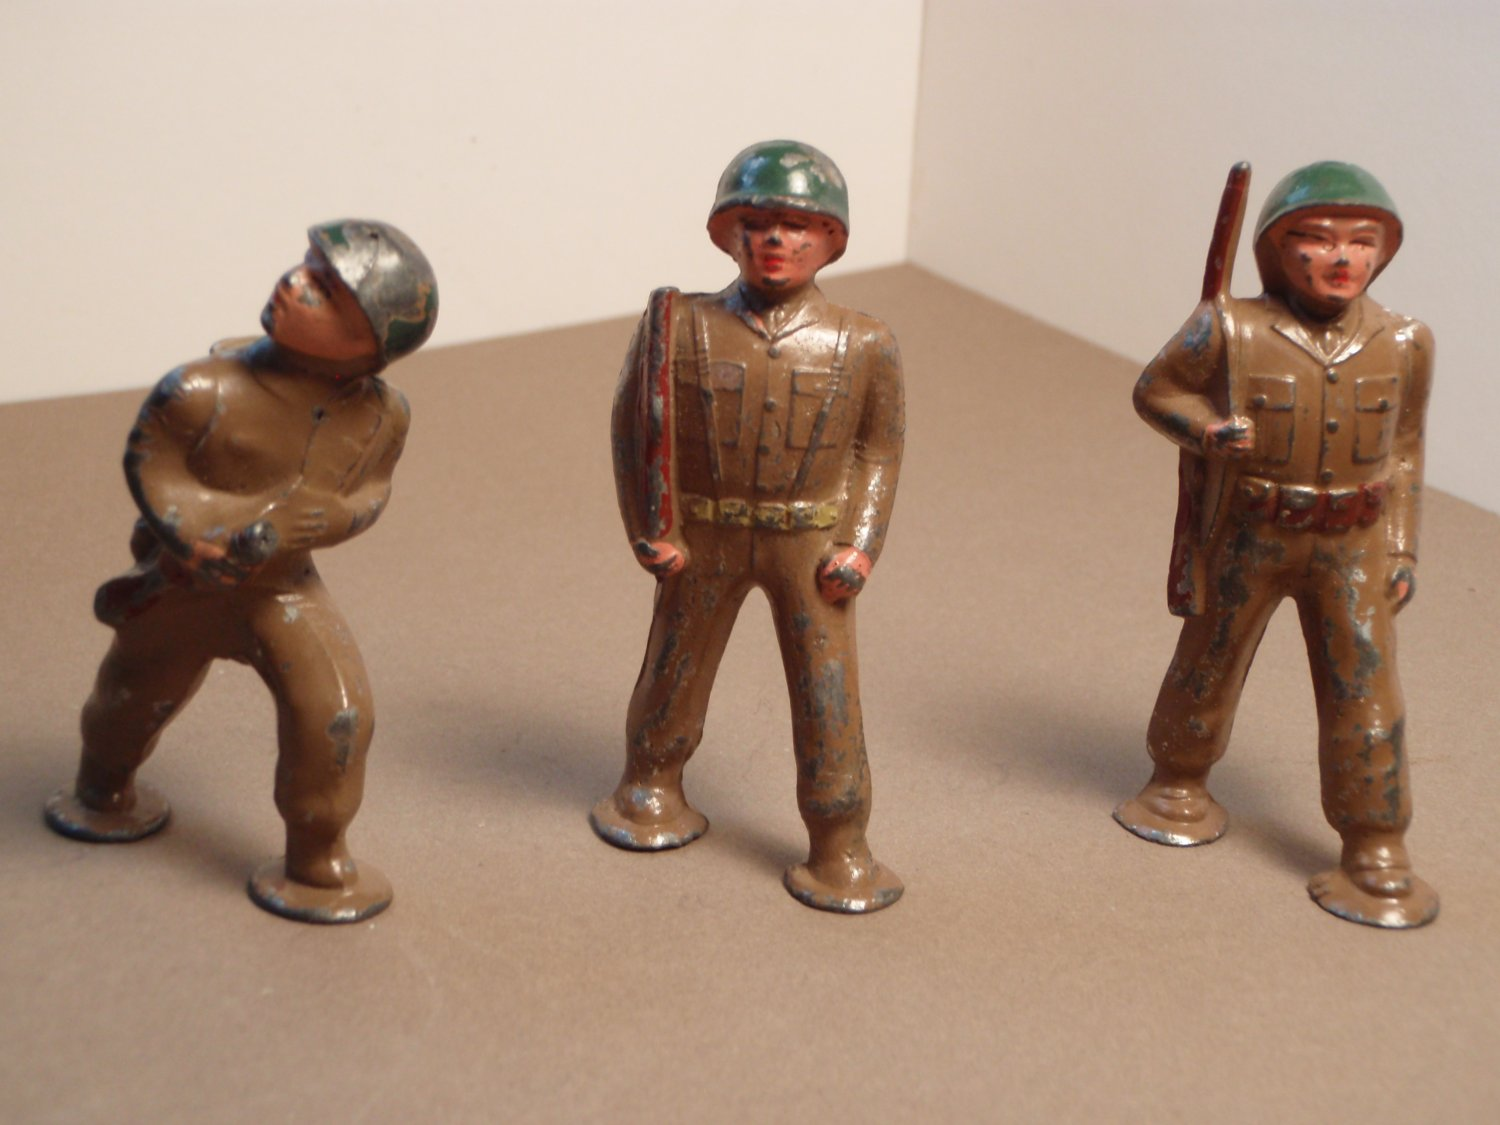 Vintage Barclay Podfoot Soldiers (3 Lead Soldiers)